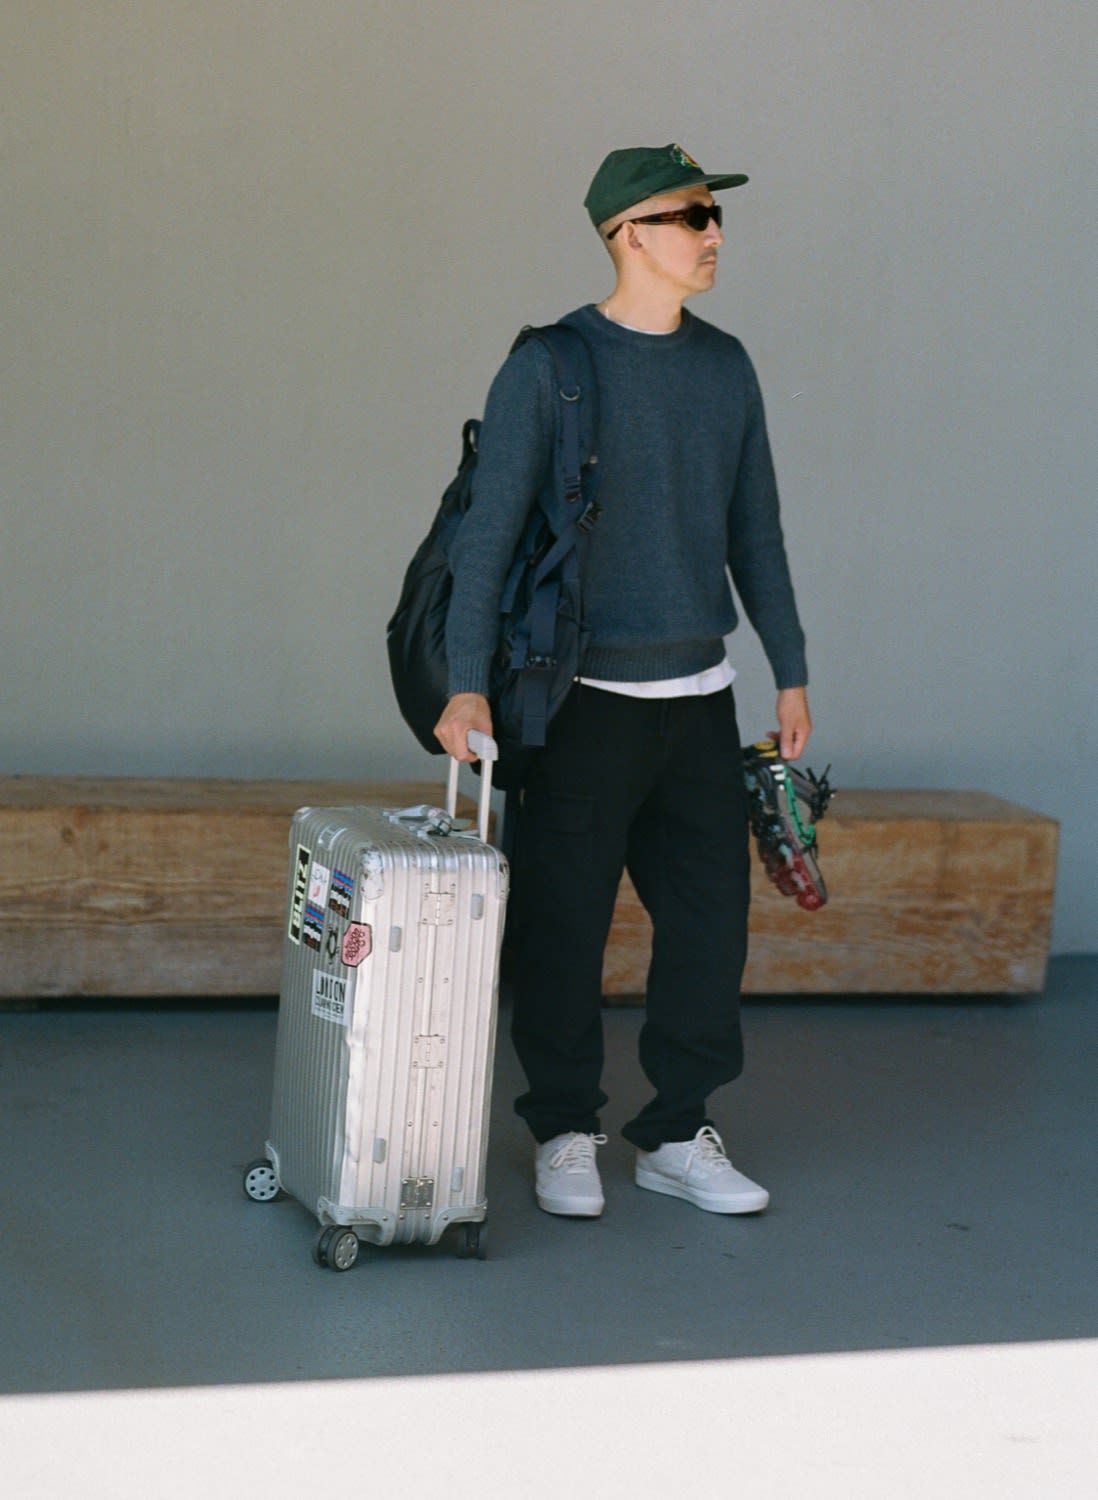 Jason Markk wearing VANS VAULT x Blends Bones Old Skool ComfyCush LX with Rimowa suitcase in LA